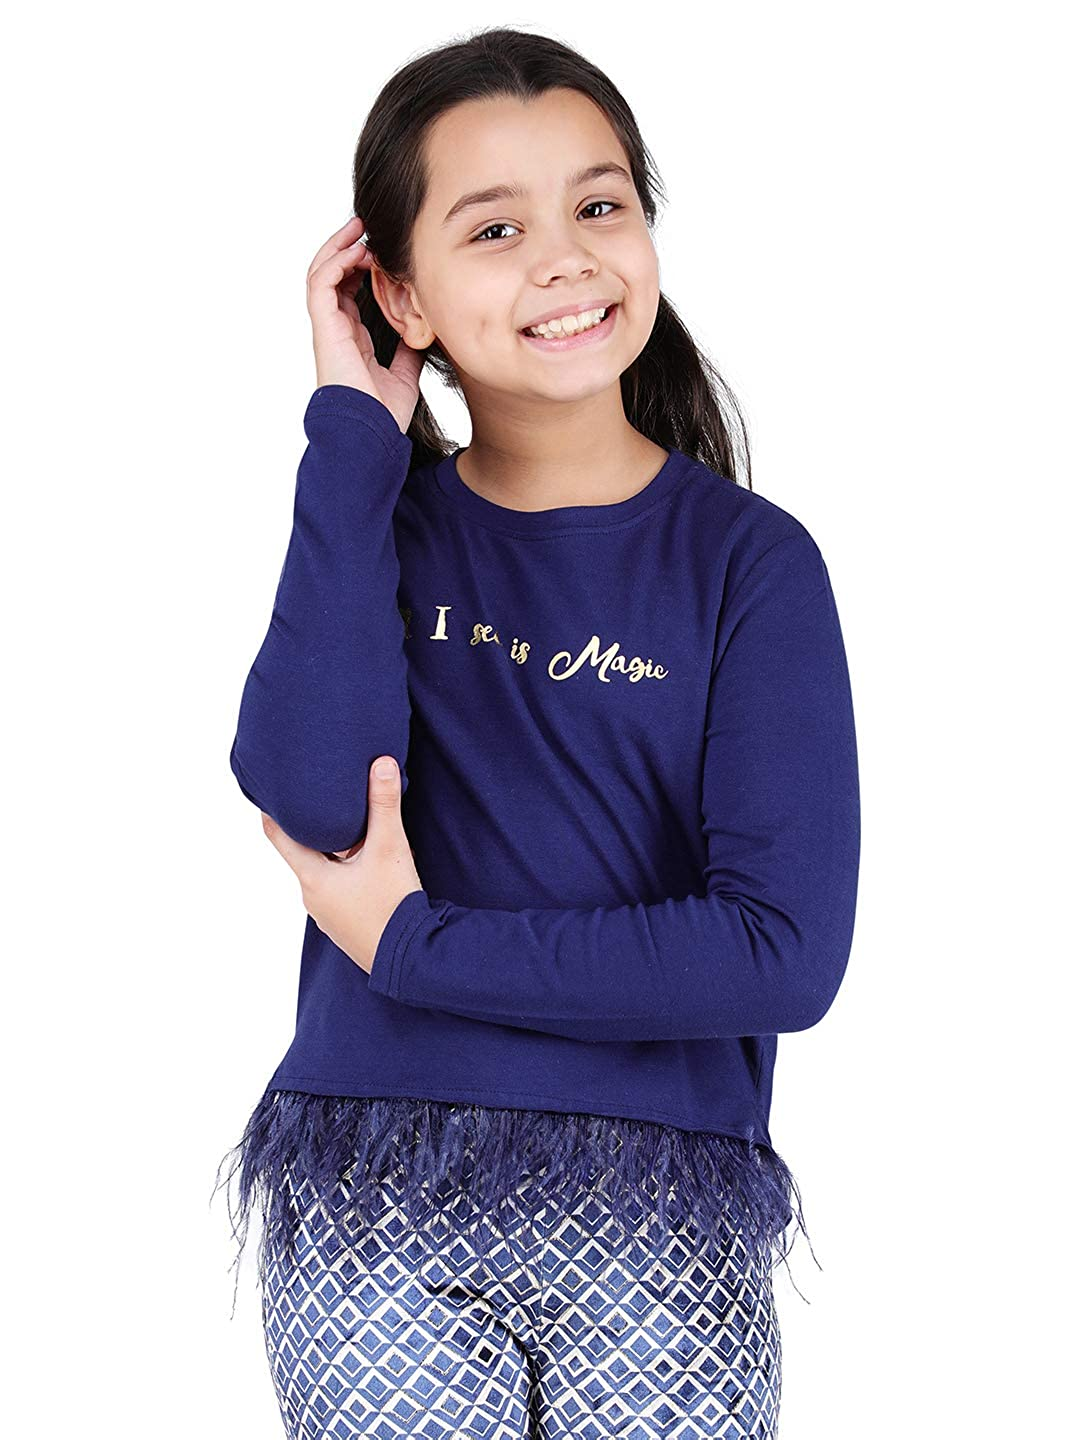 Buy One Friday Girls Full Sleeves T-Shirt | Baby Girls Tees | Designer Blue  Tops for Kids | Winter Wear(0-12 Years) at Amazon.in